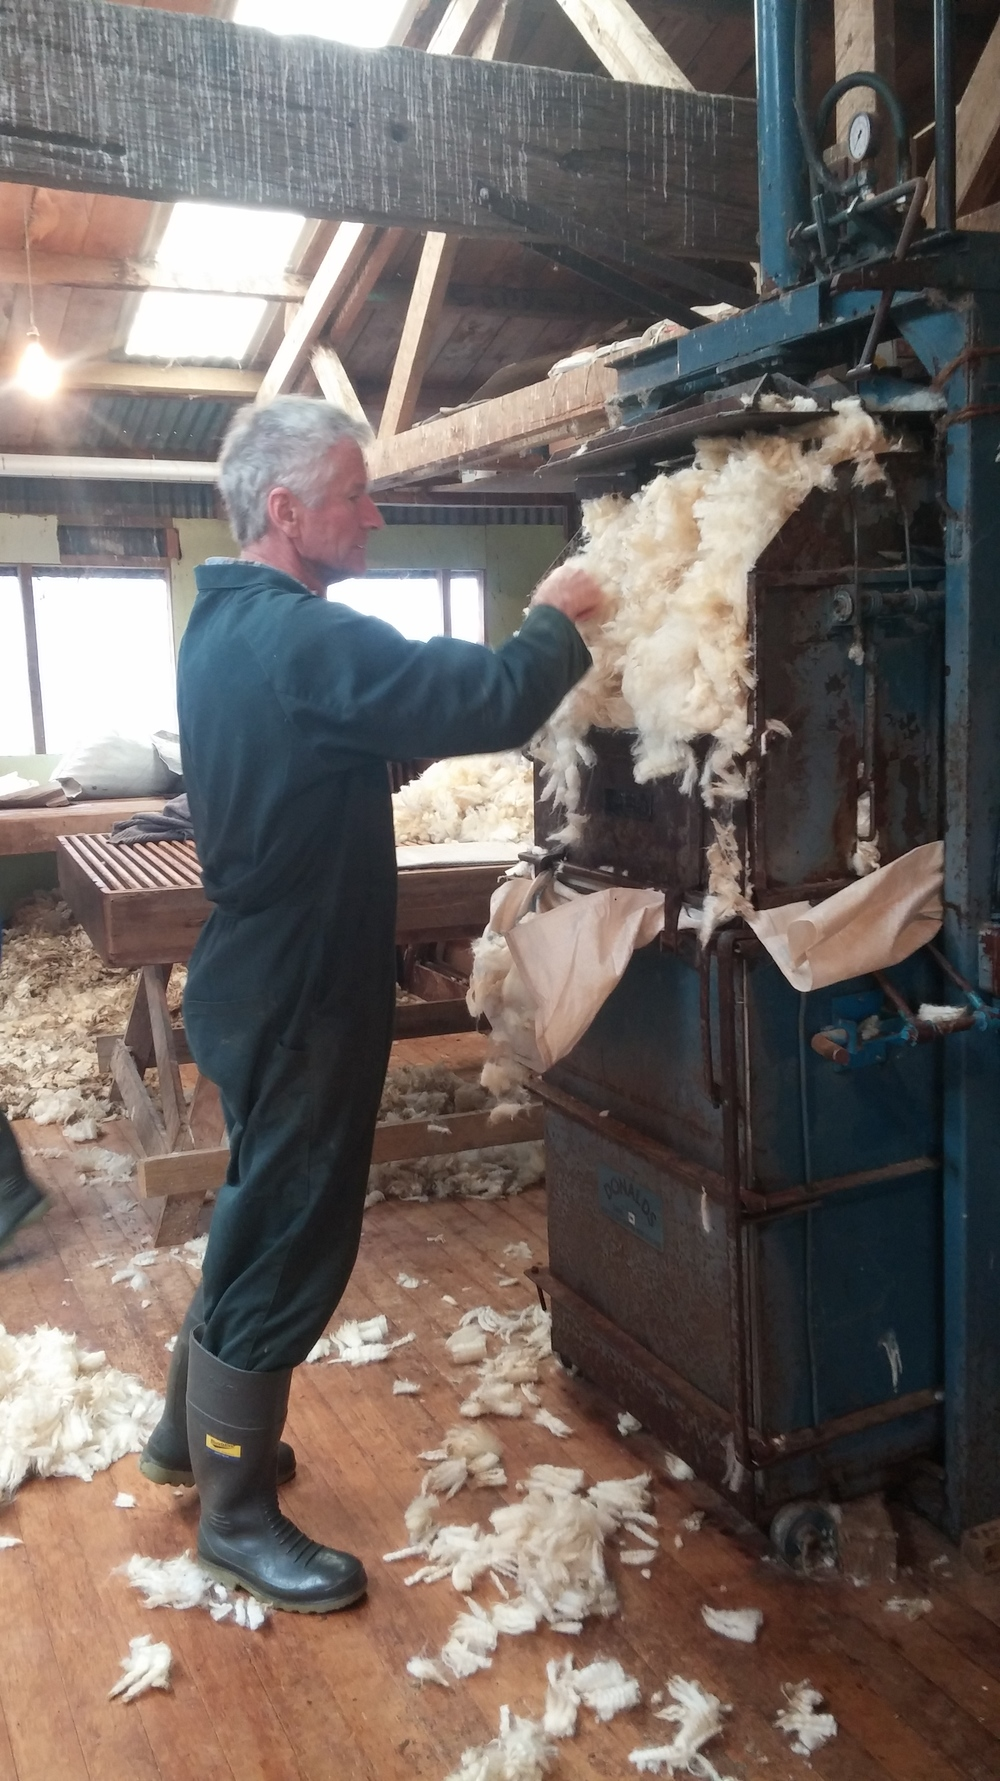 Ron, the farmer, shoving the wool into the press. Got 5 bails of wool from the shearing!